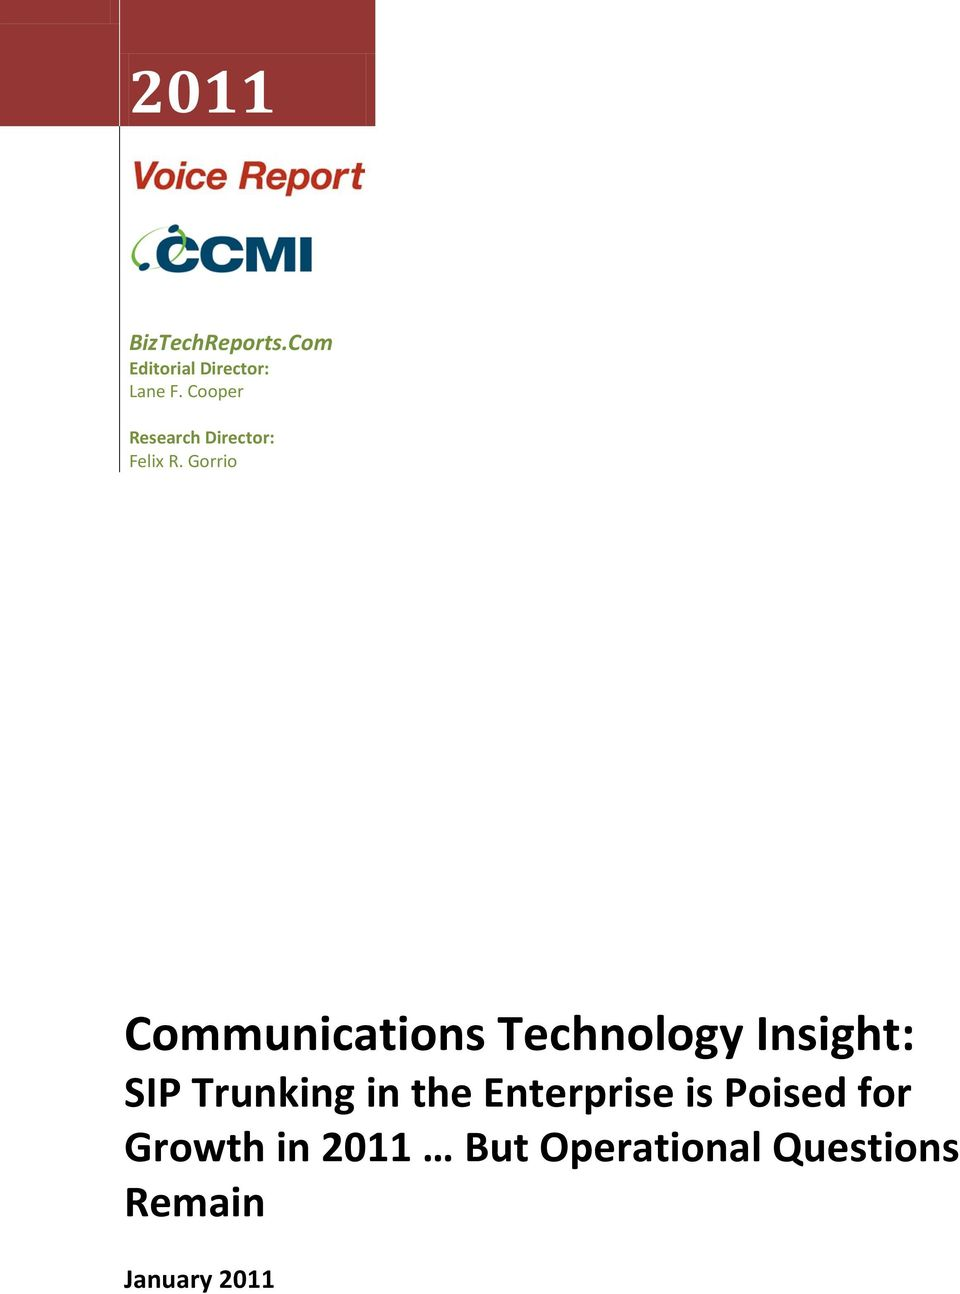 Gorrio Communications Technology Insight: SIP Trunking in